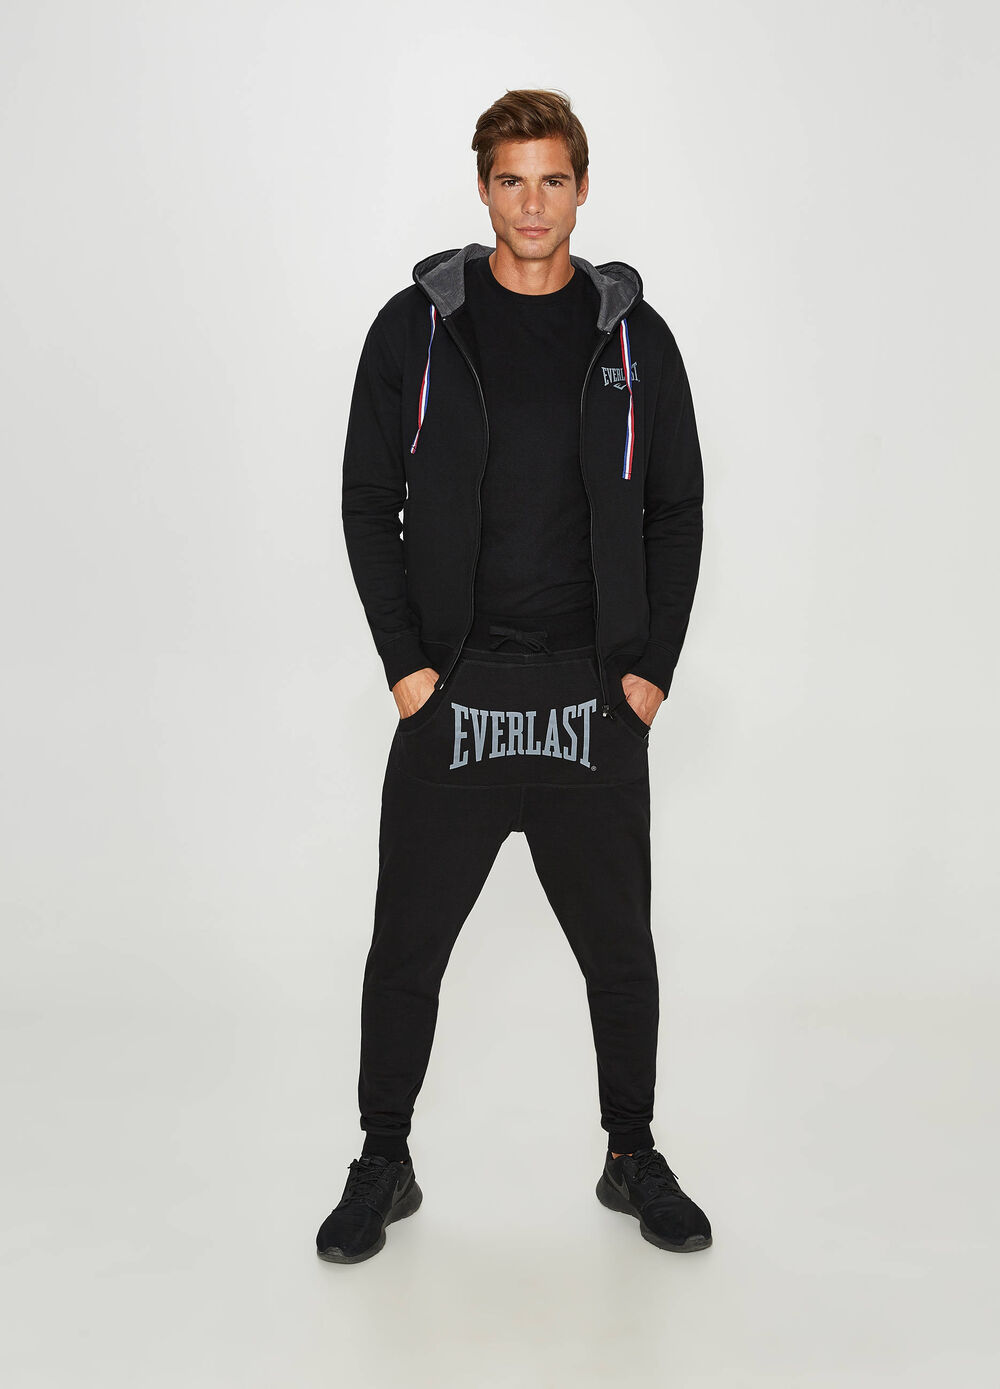 Everlast joggers with low crotch